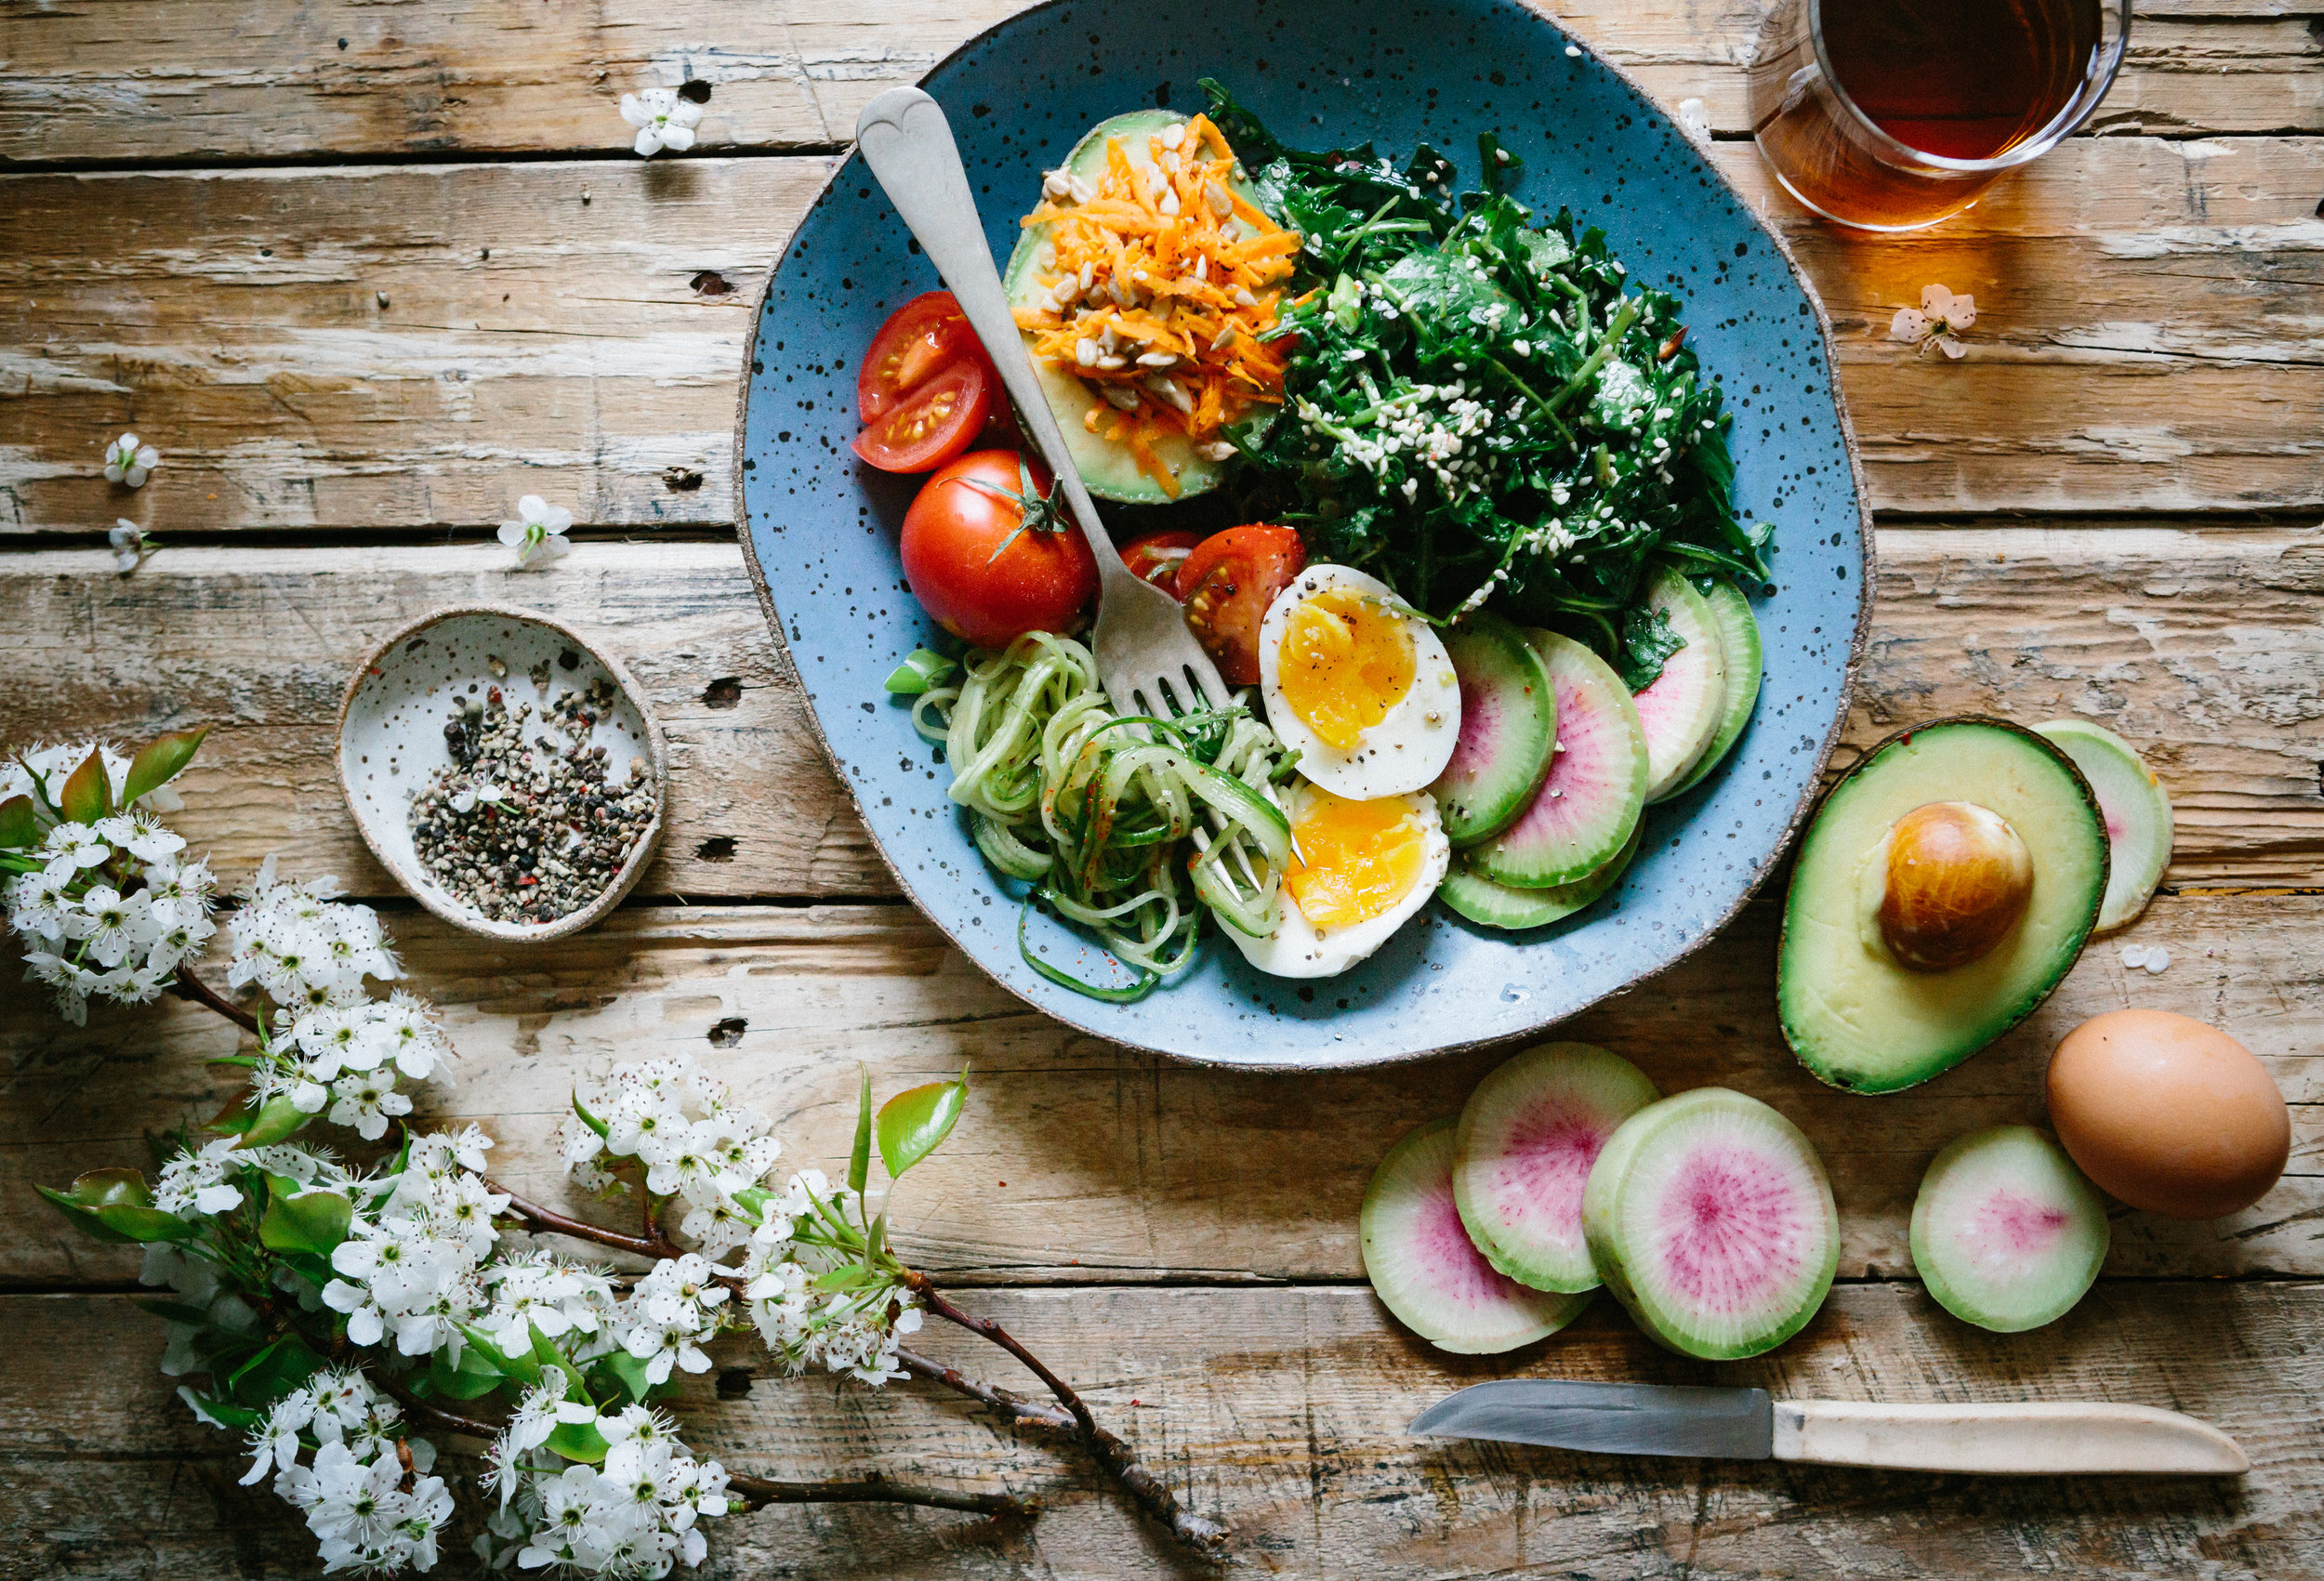 Nutrition Resources - Check out Dave's tips on eating right and staying healthy outside of the gym.